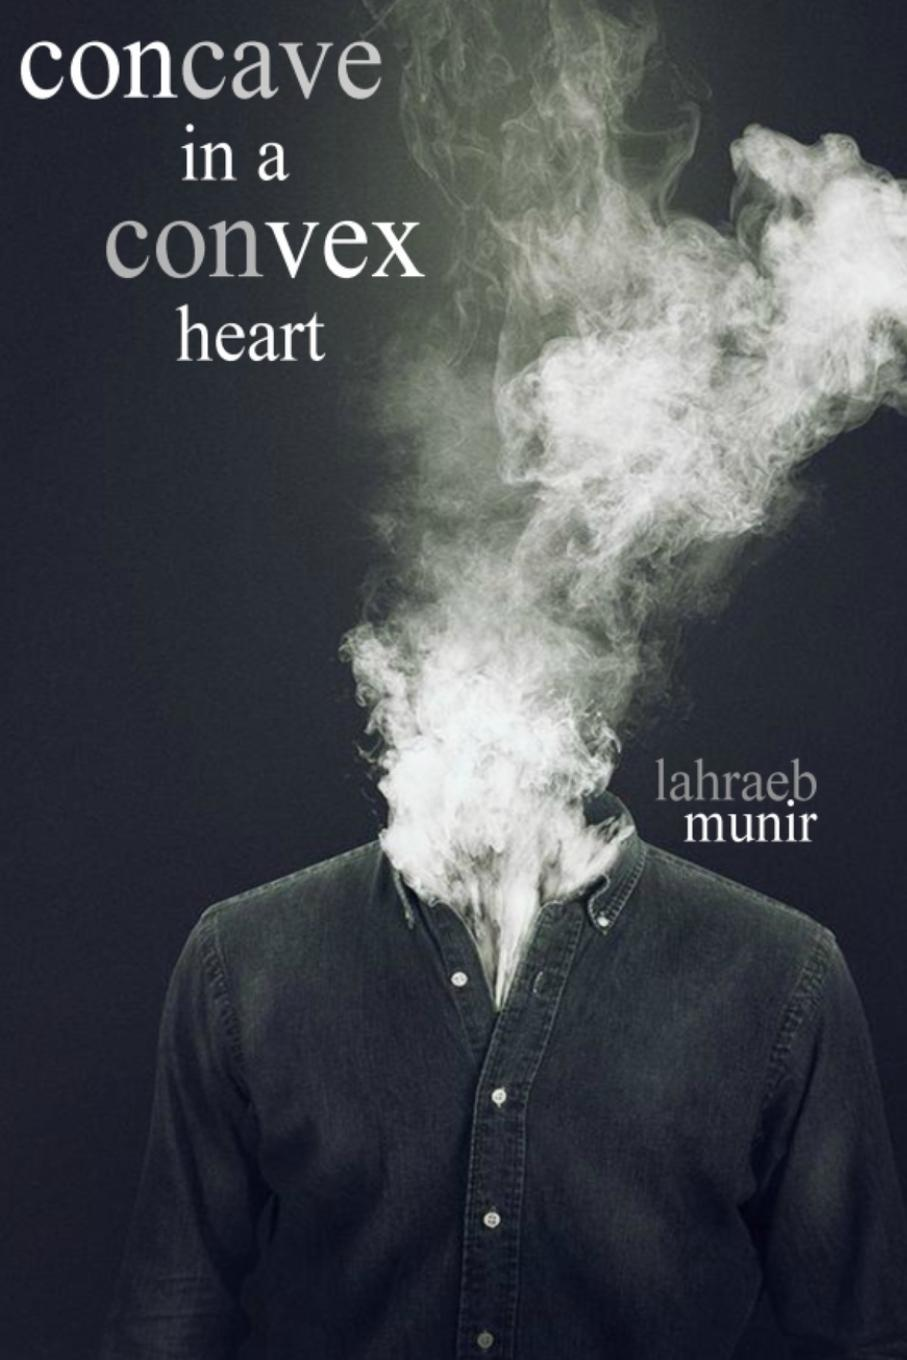 lahraeb munir concave in a convex heart maria m bowe warfare the things they never tell you about part 1